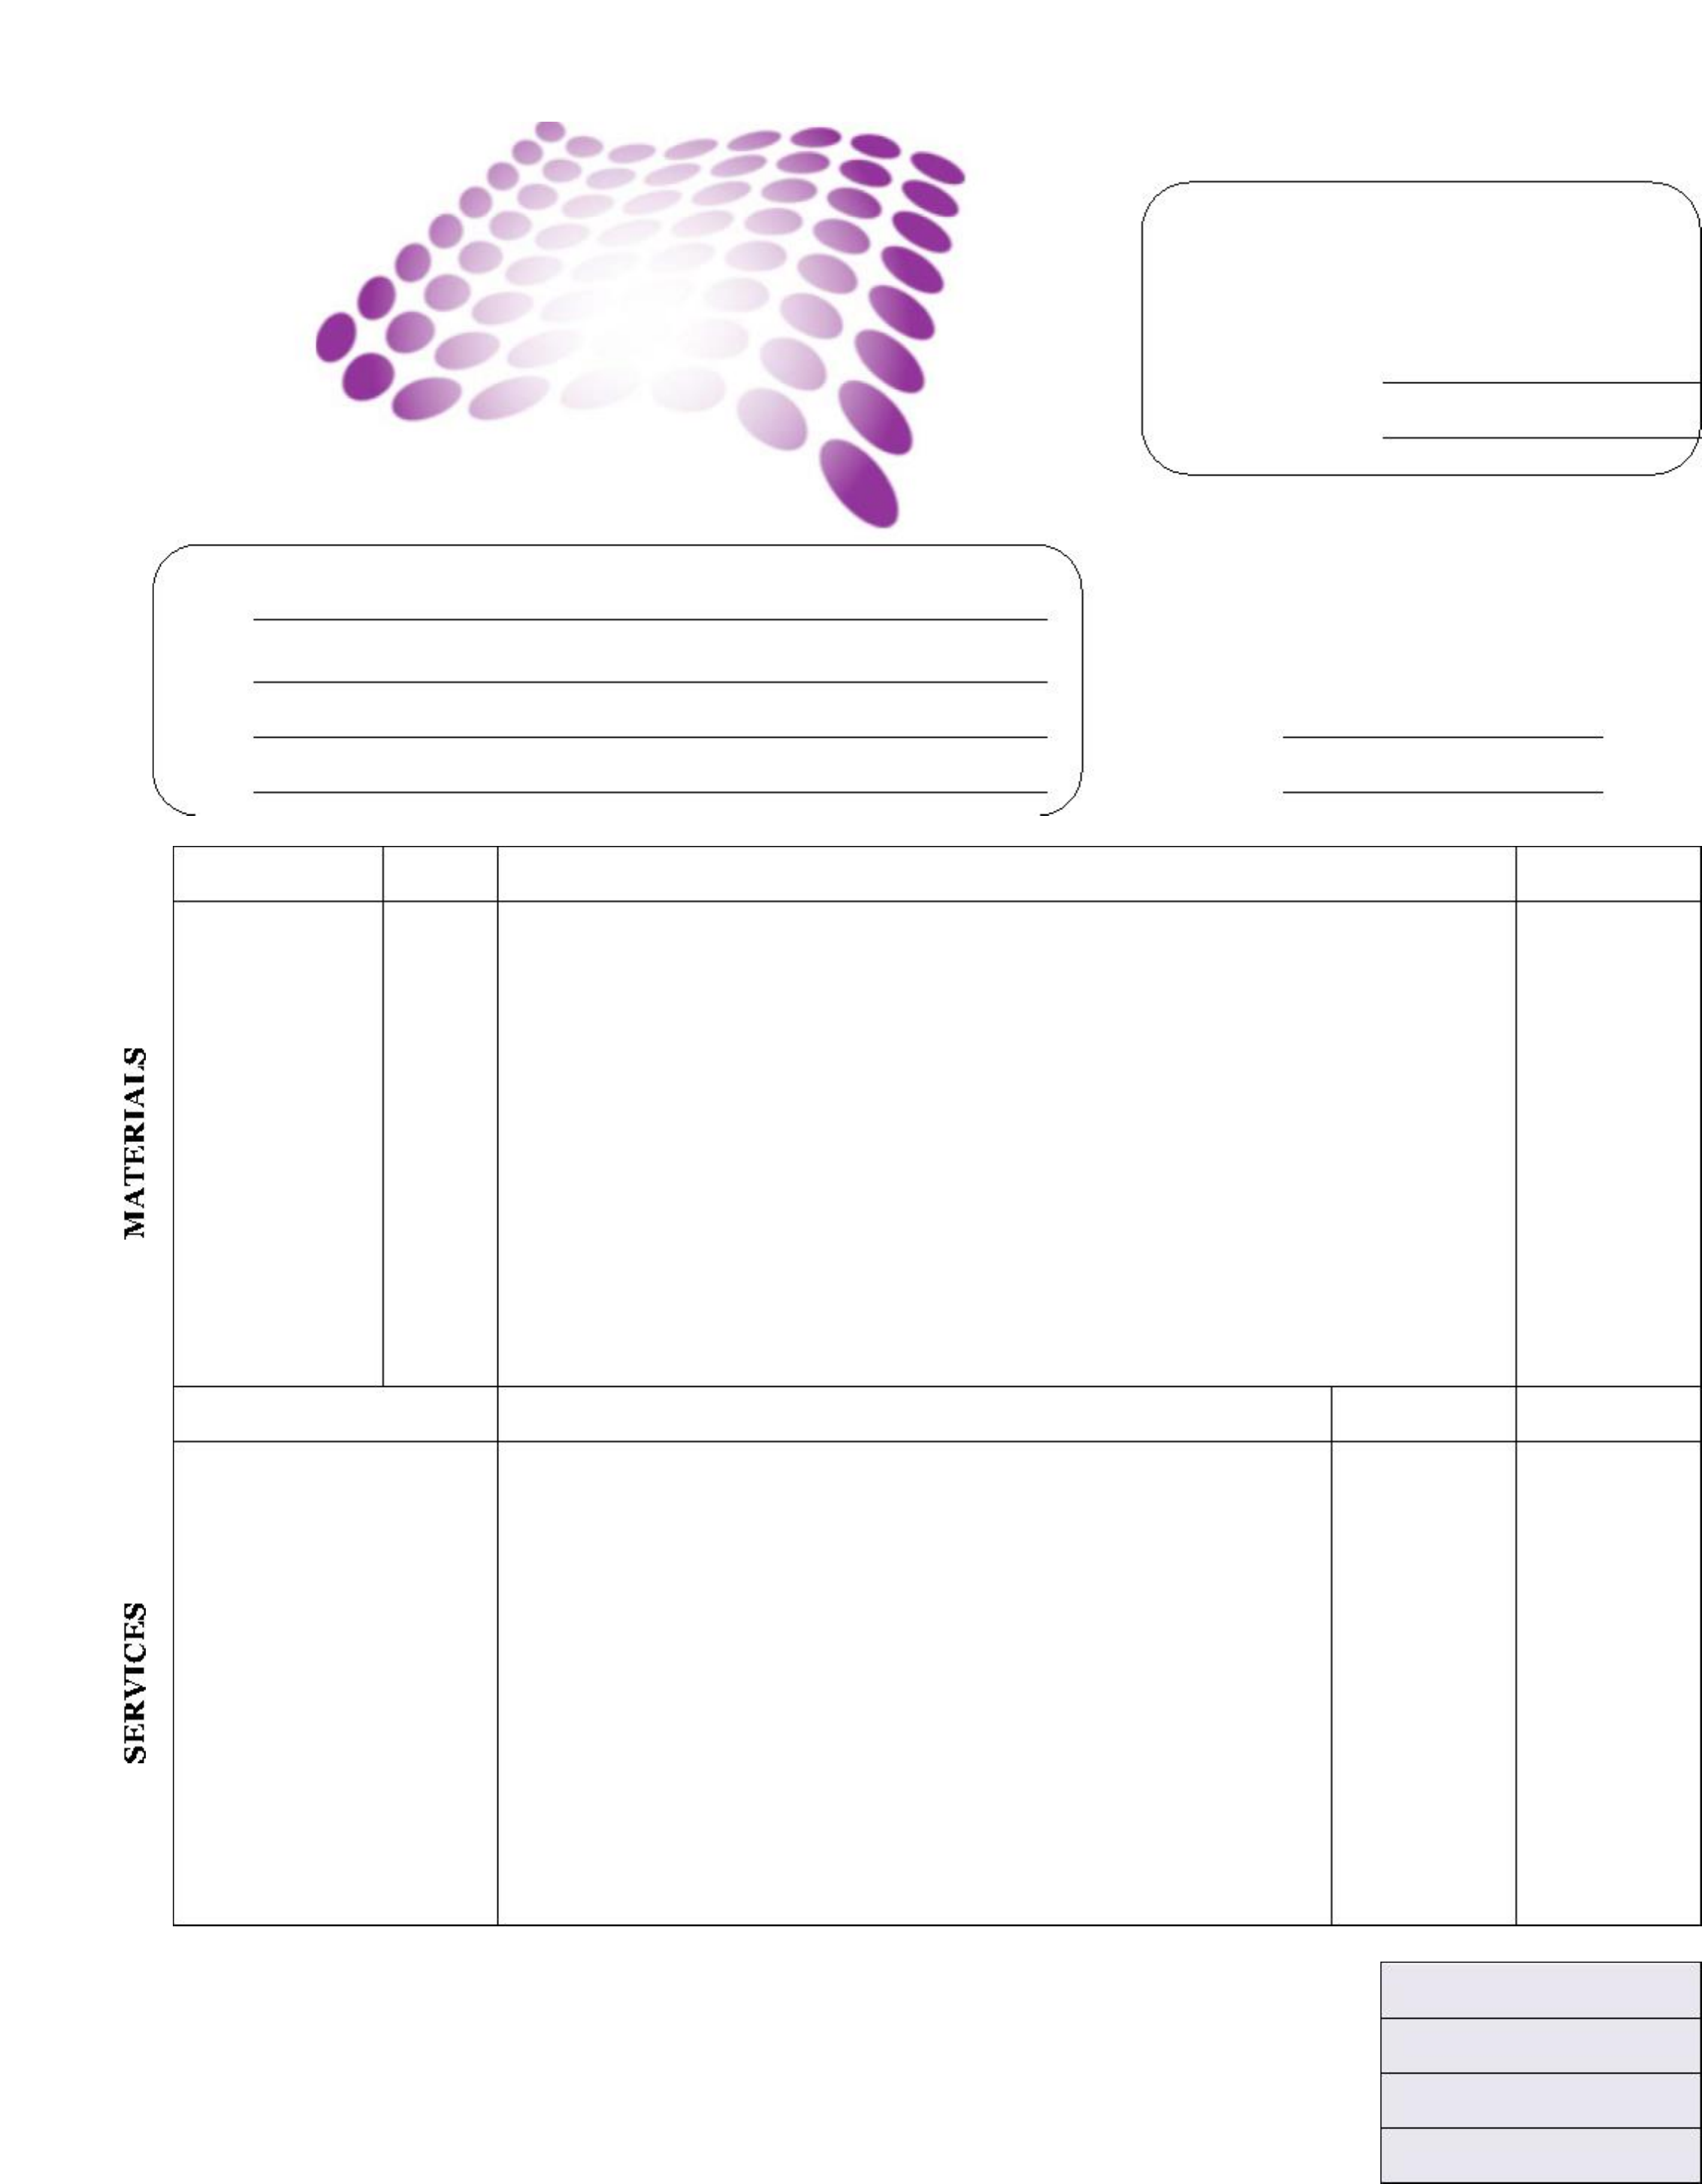 sample graphic design invoice template